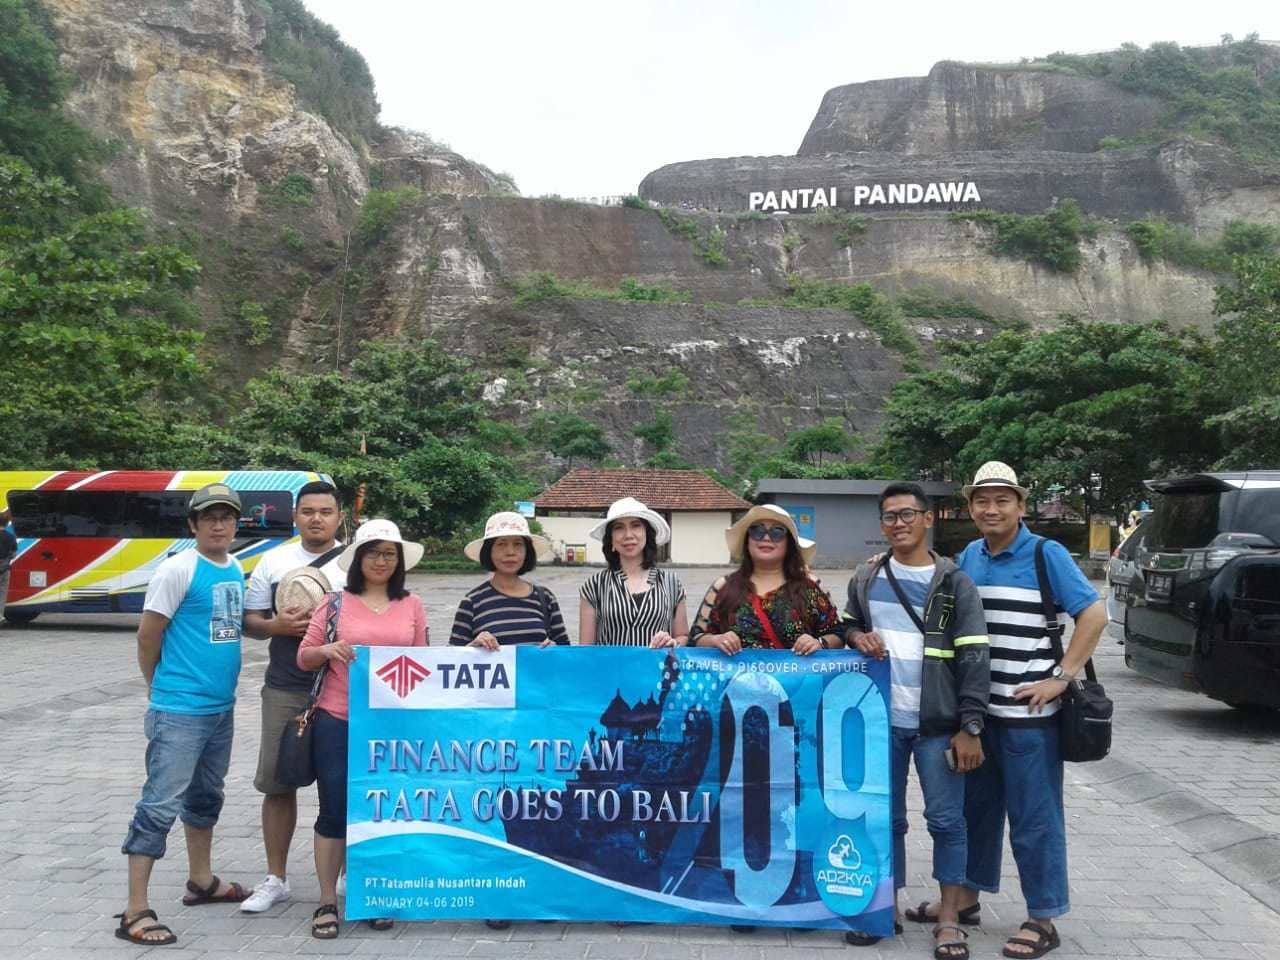 BALI TOUR 04 - 06 JAN 2019 WITH TATA'S GROUP